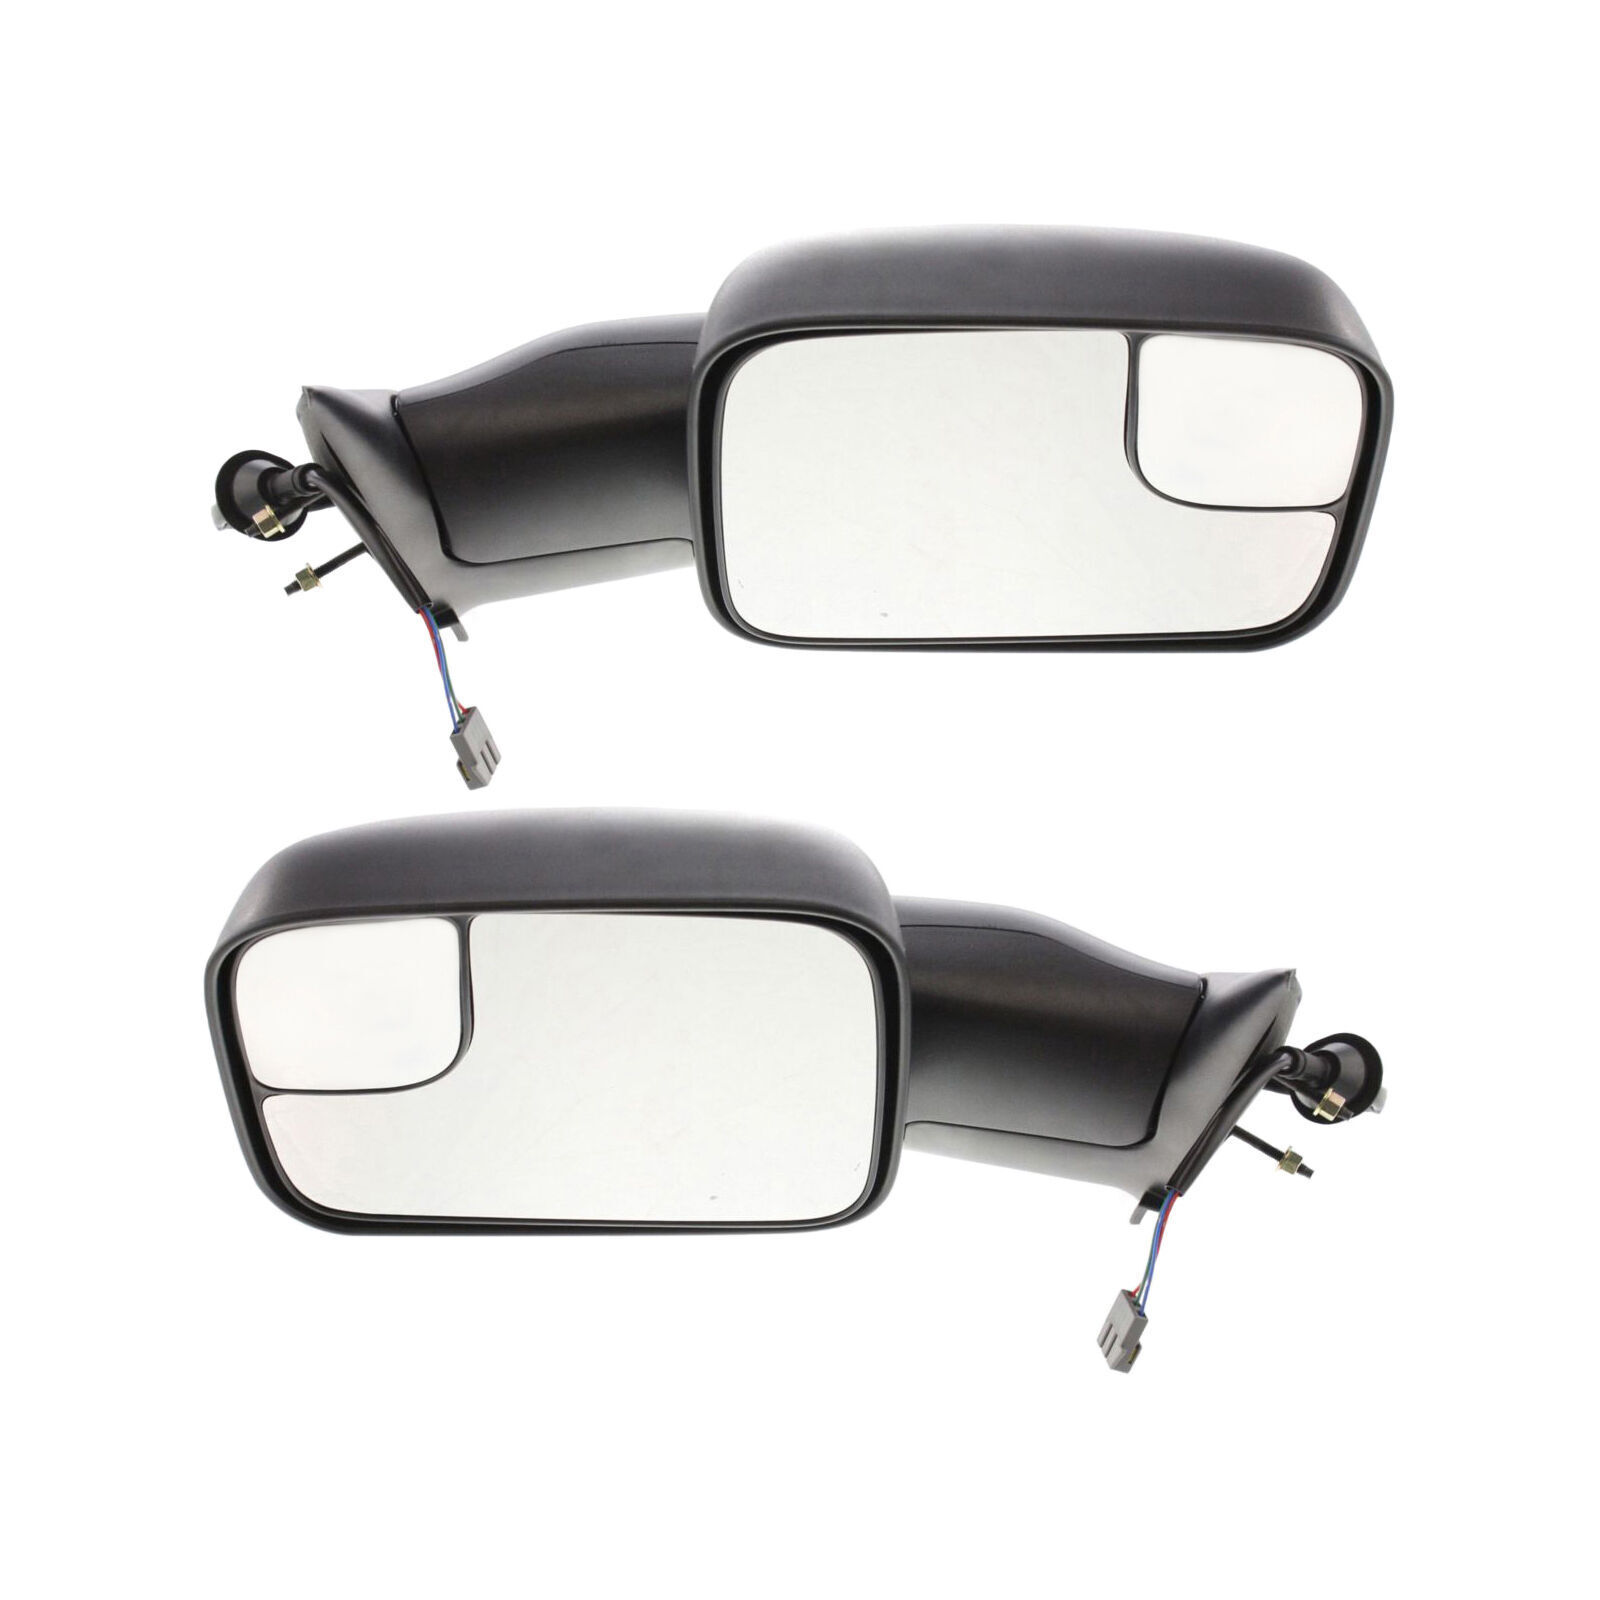 2500 3500 1994-1997 New Set of 2 LH /& RH Door Mirror Set for Dodge Ram 1500